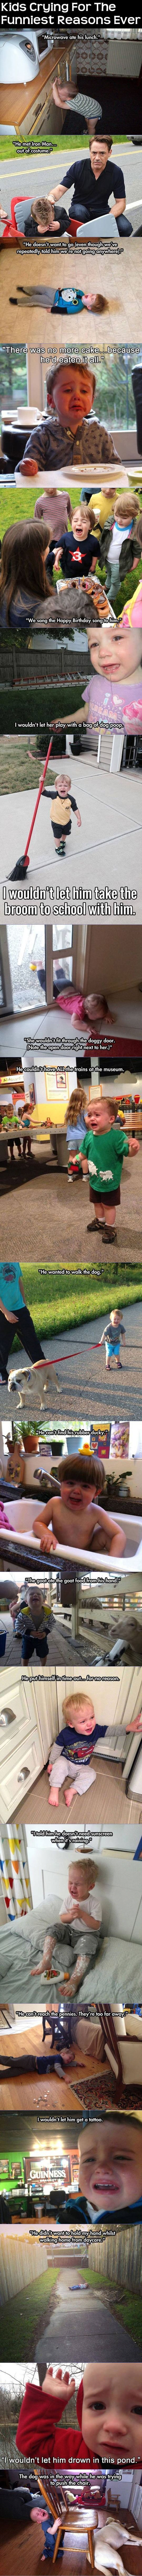 Kids Crying For The Funniest Reasons Ever funny kids parents lol children humor funny pictures funny kids hysterical funny images why my kid is crying - http://www.training-a-puppy.info/kids-crying-for-the-funniest-reasons-ever-funny-kids-parents-lol-children-humor-funny-pictures-funny-kids-hysterical-funny-images-why-my-kid-is-crying/